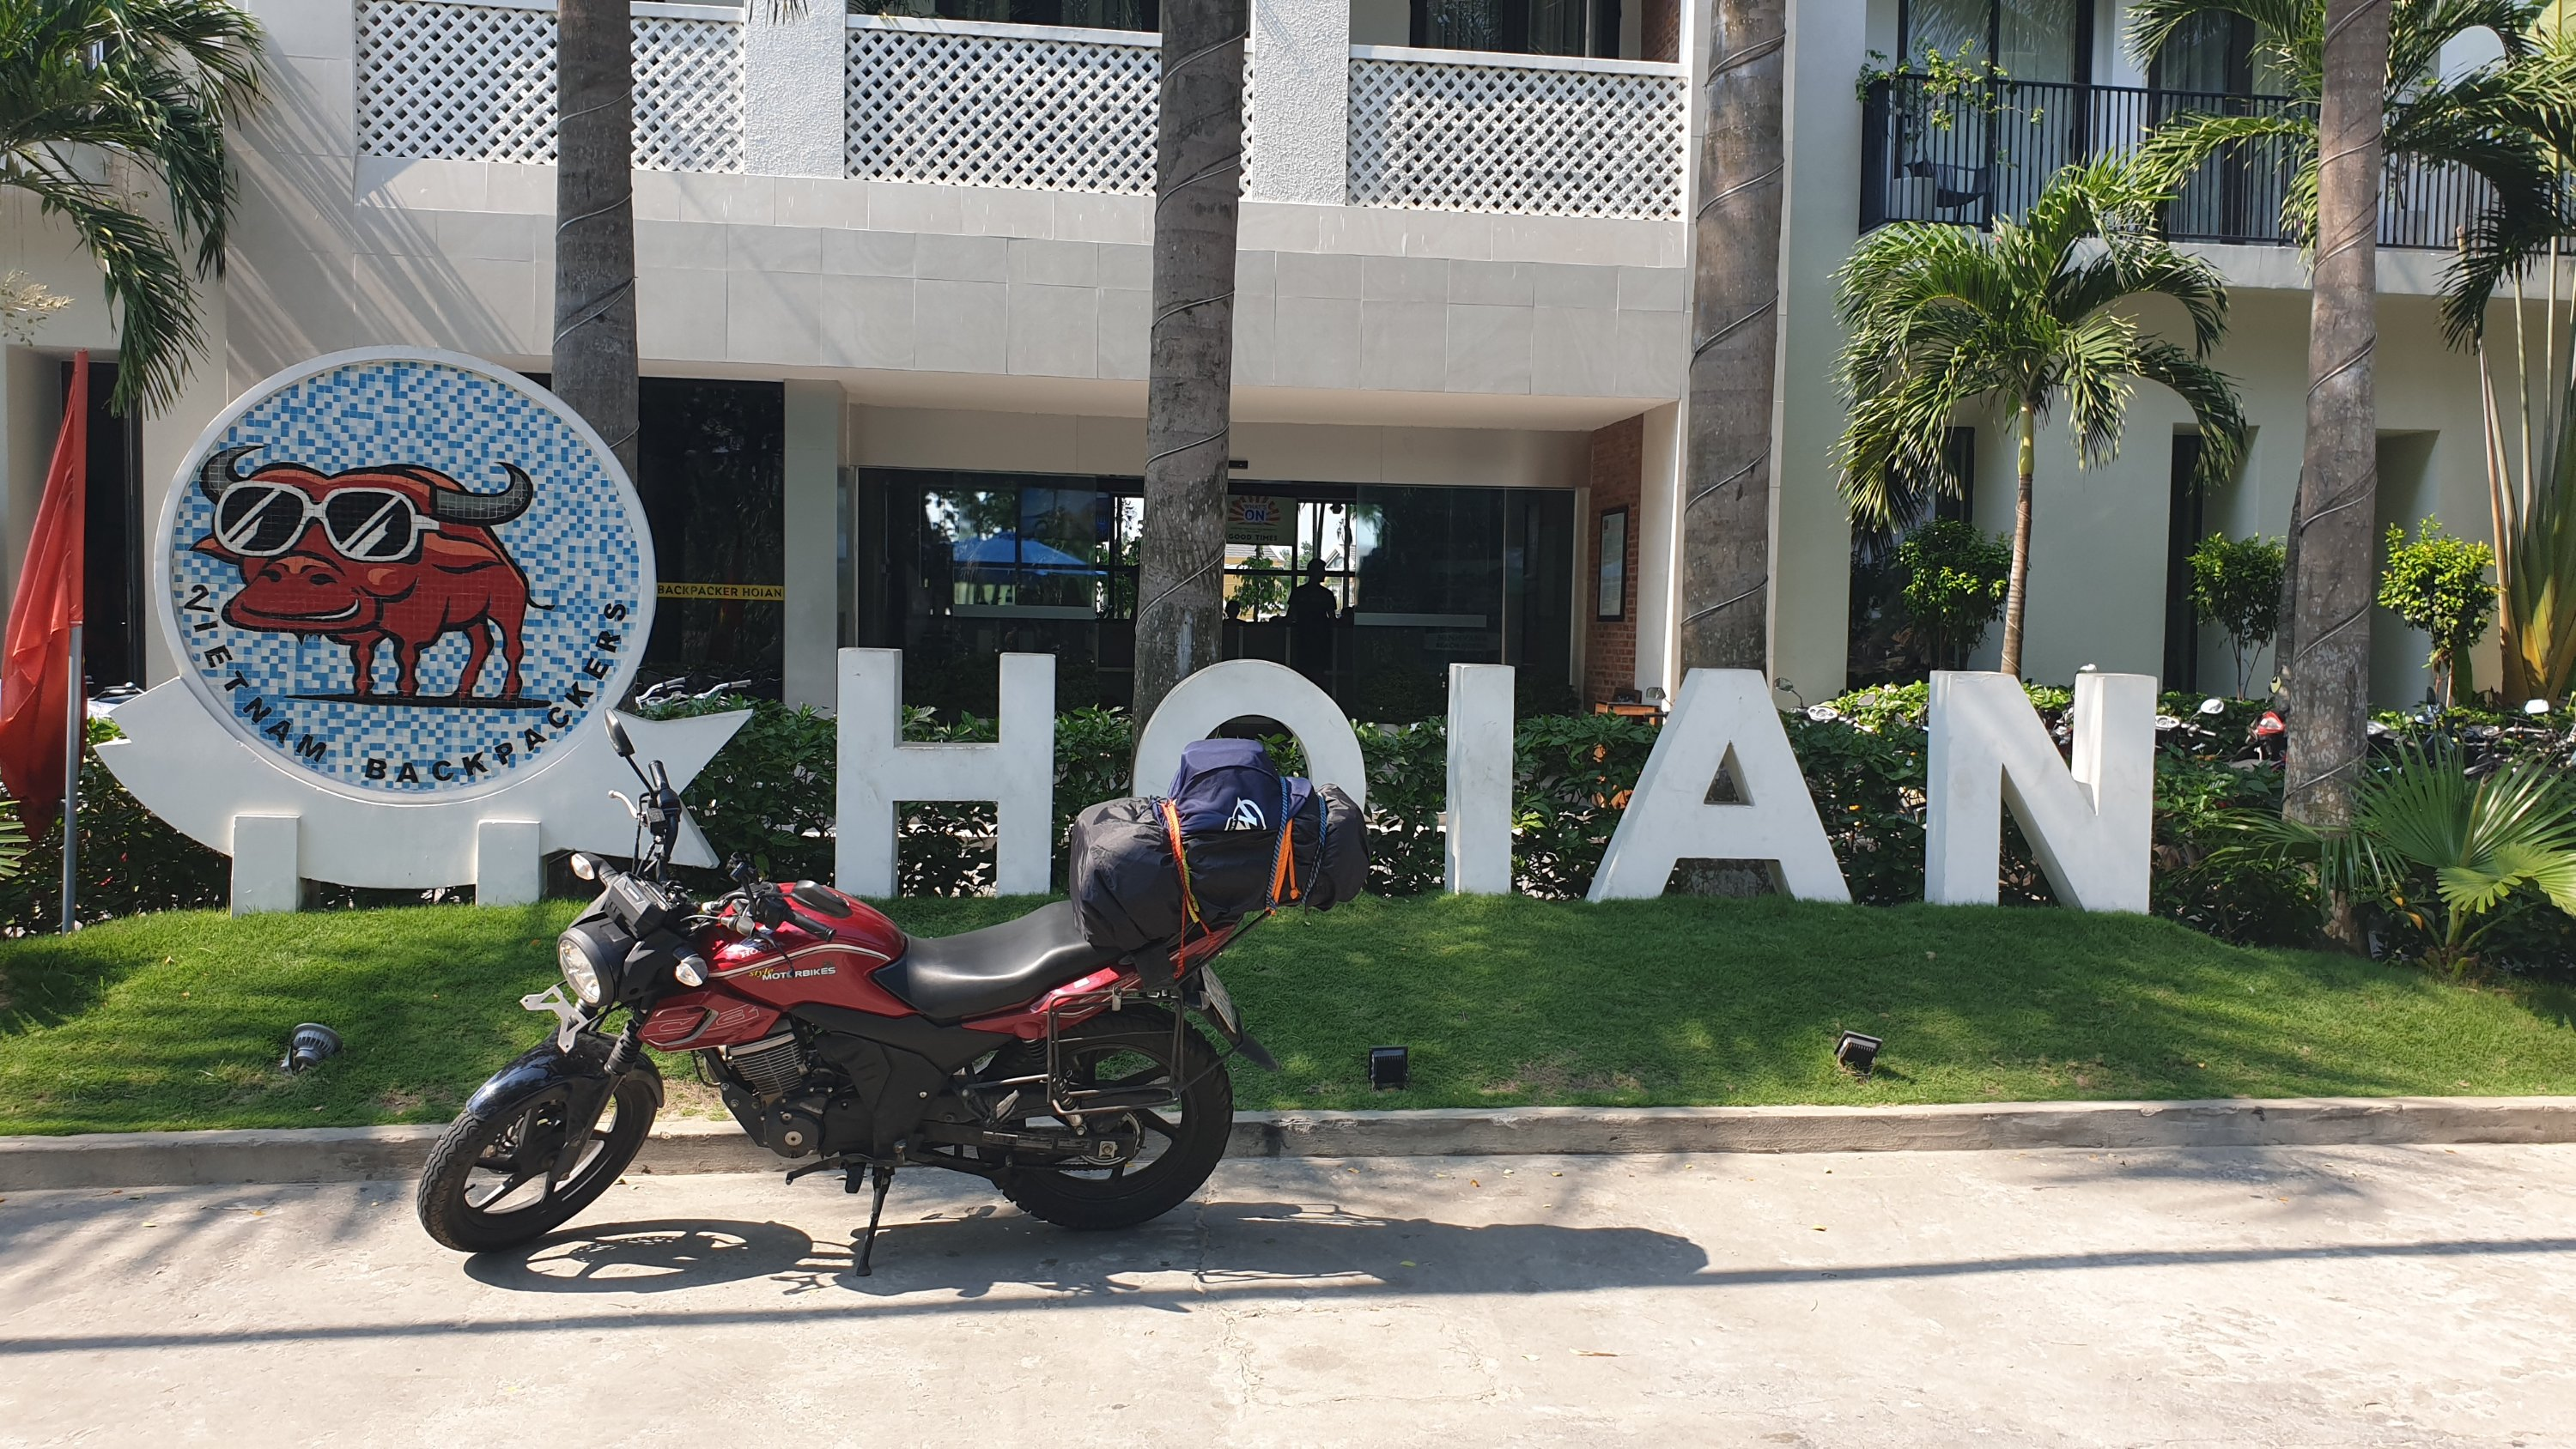 Bike in front of Hoi An sign